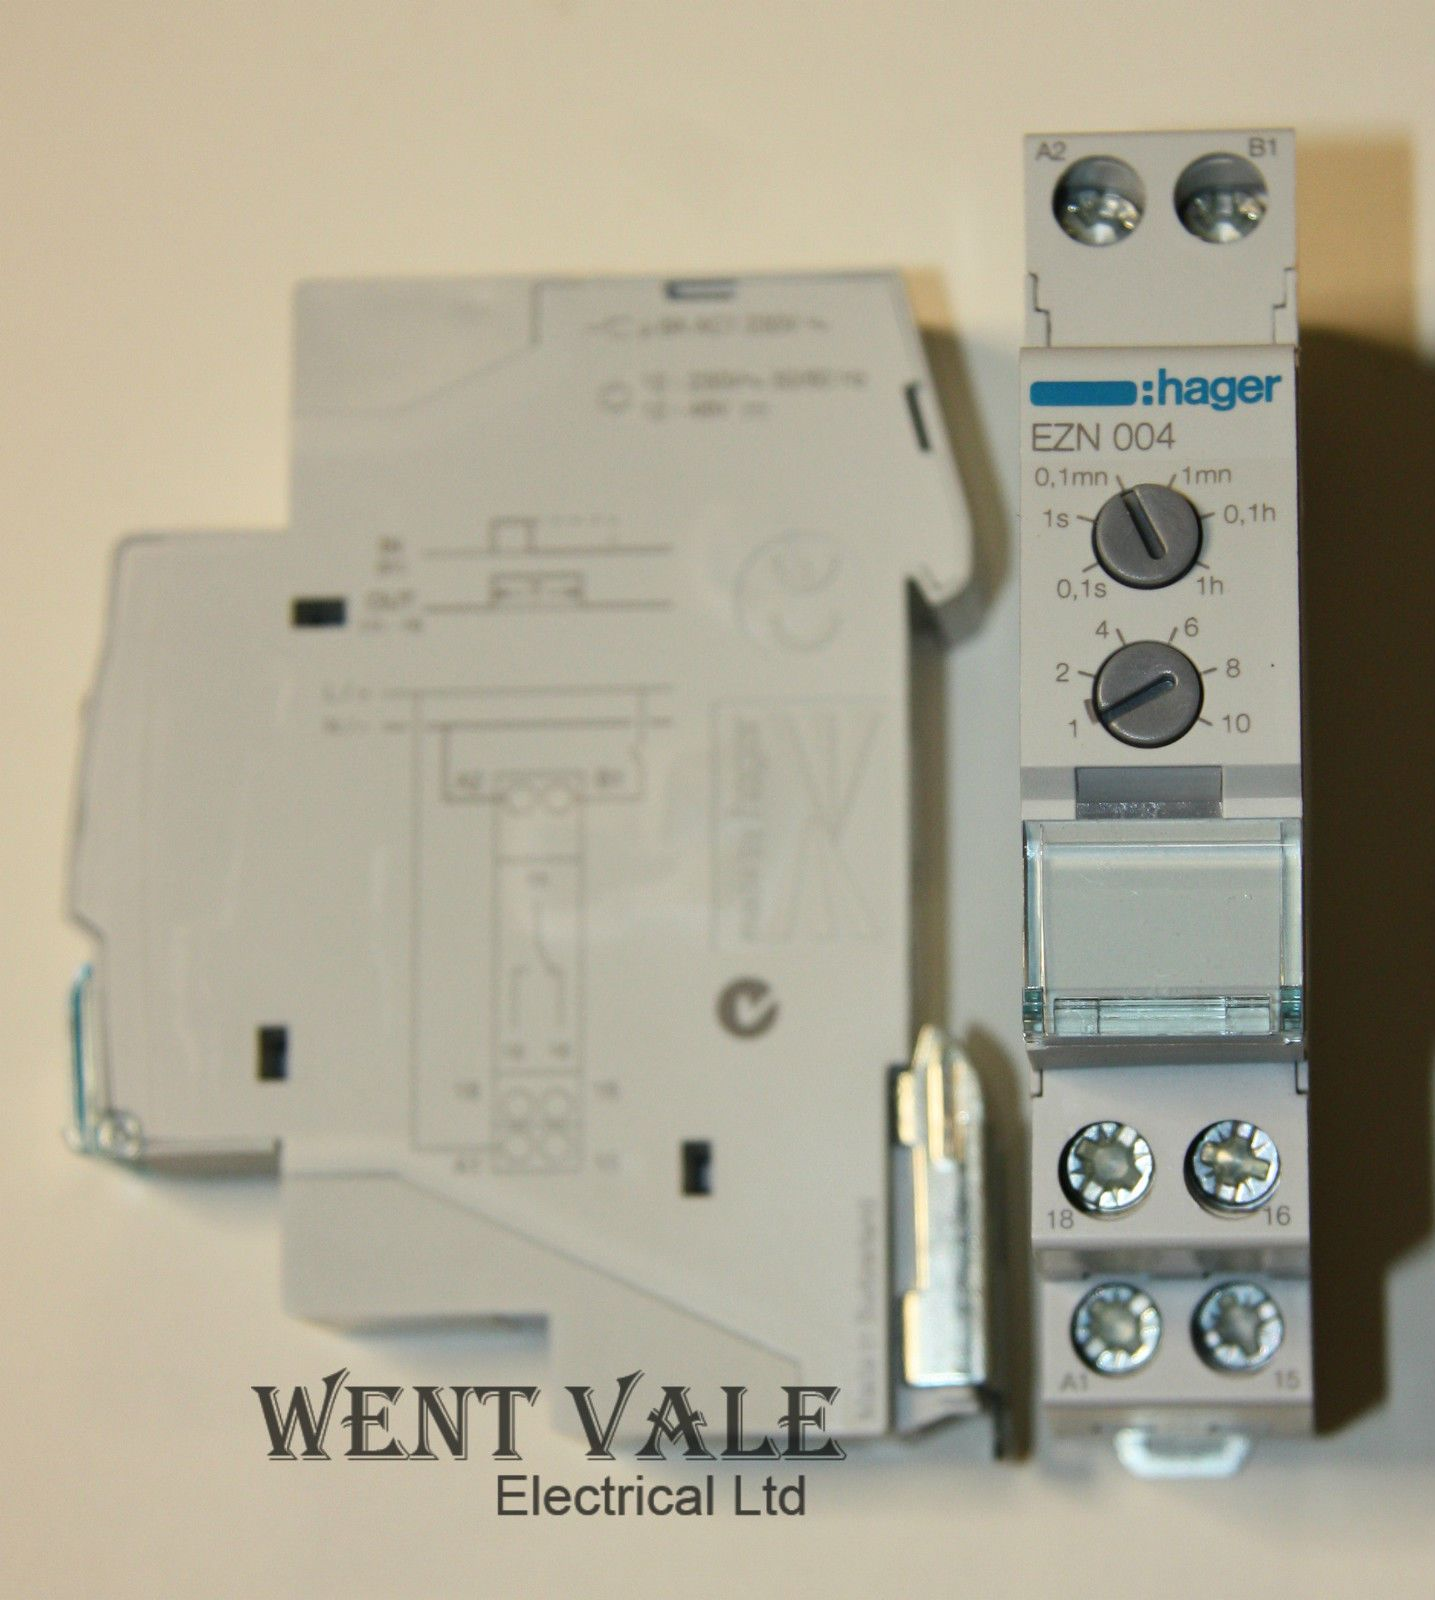 Hager Fuse Box Problems 23 Wiring Diagram Images Diagrams Common Light Fitting Diynot Forums Ezn004 Delay Timer Relay New In